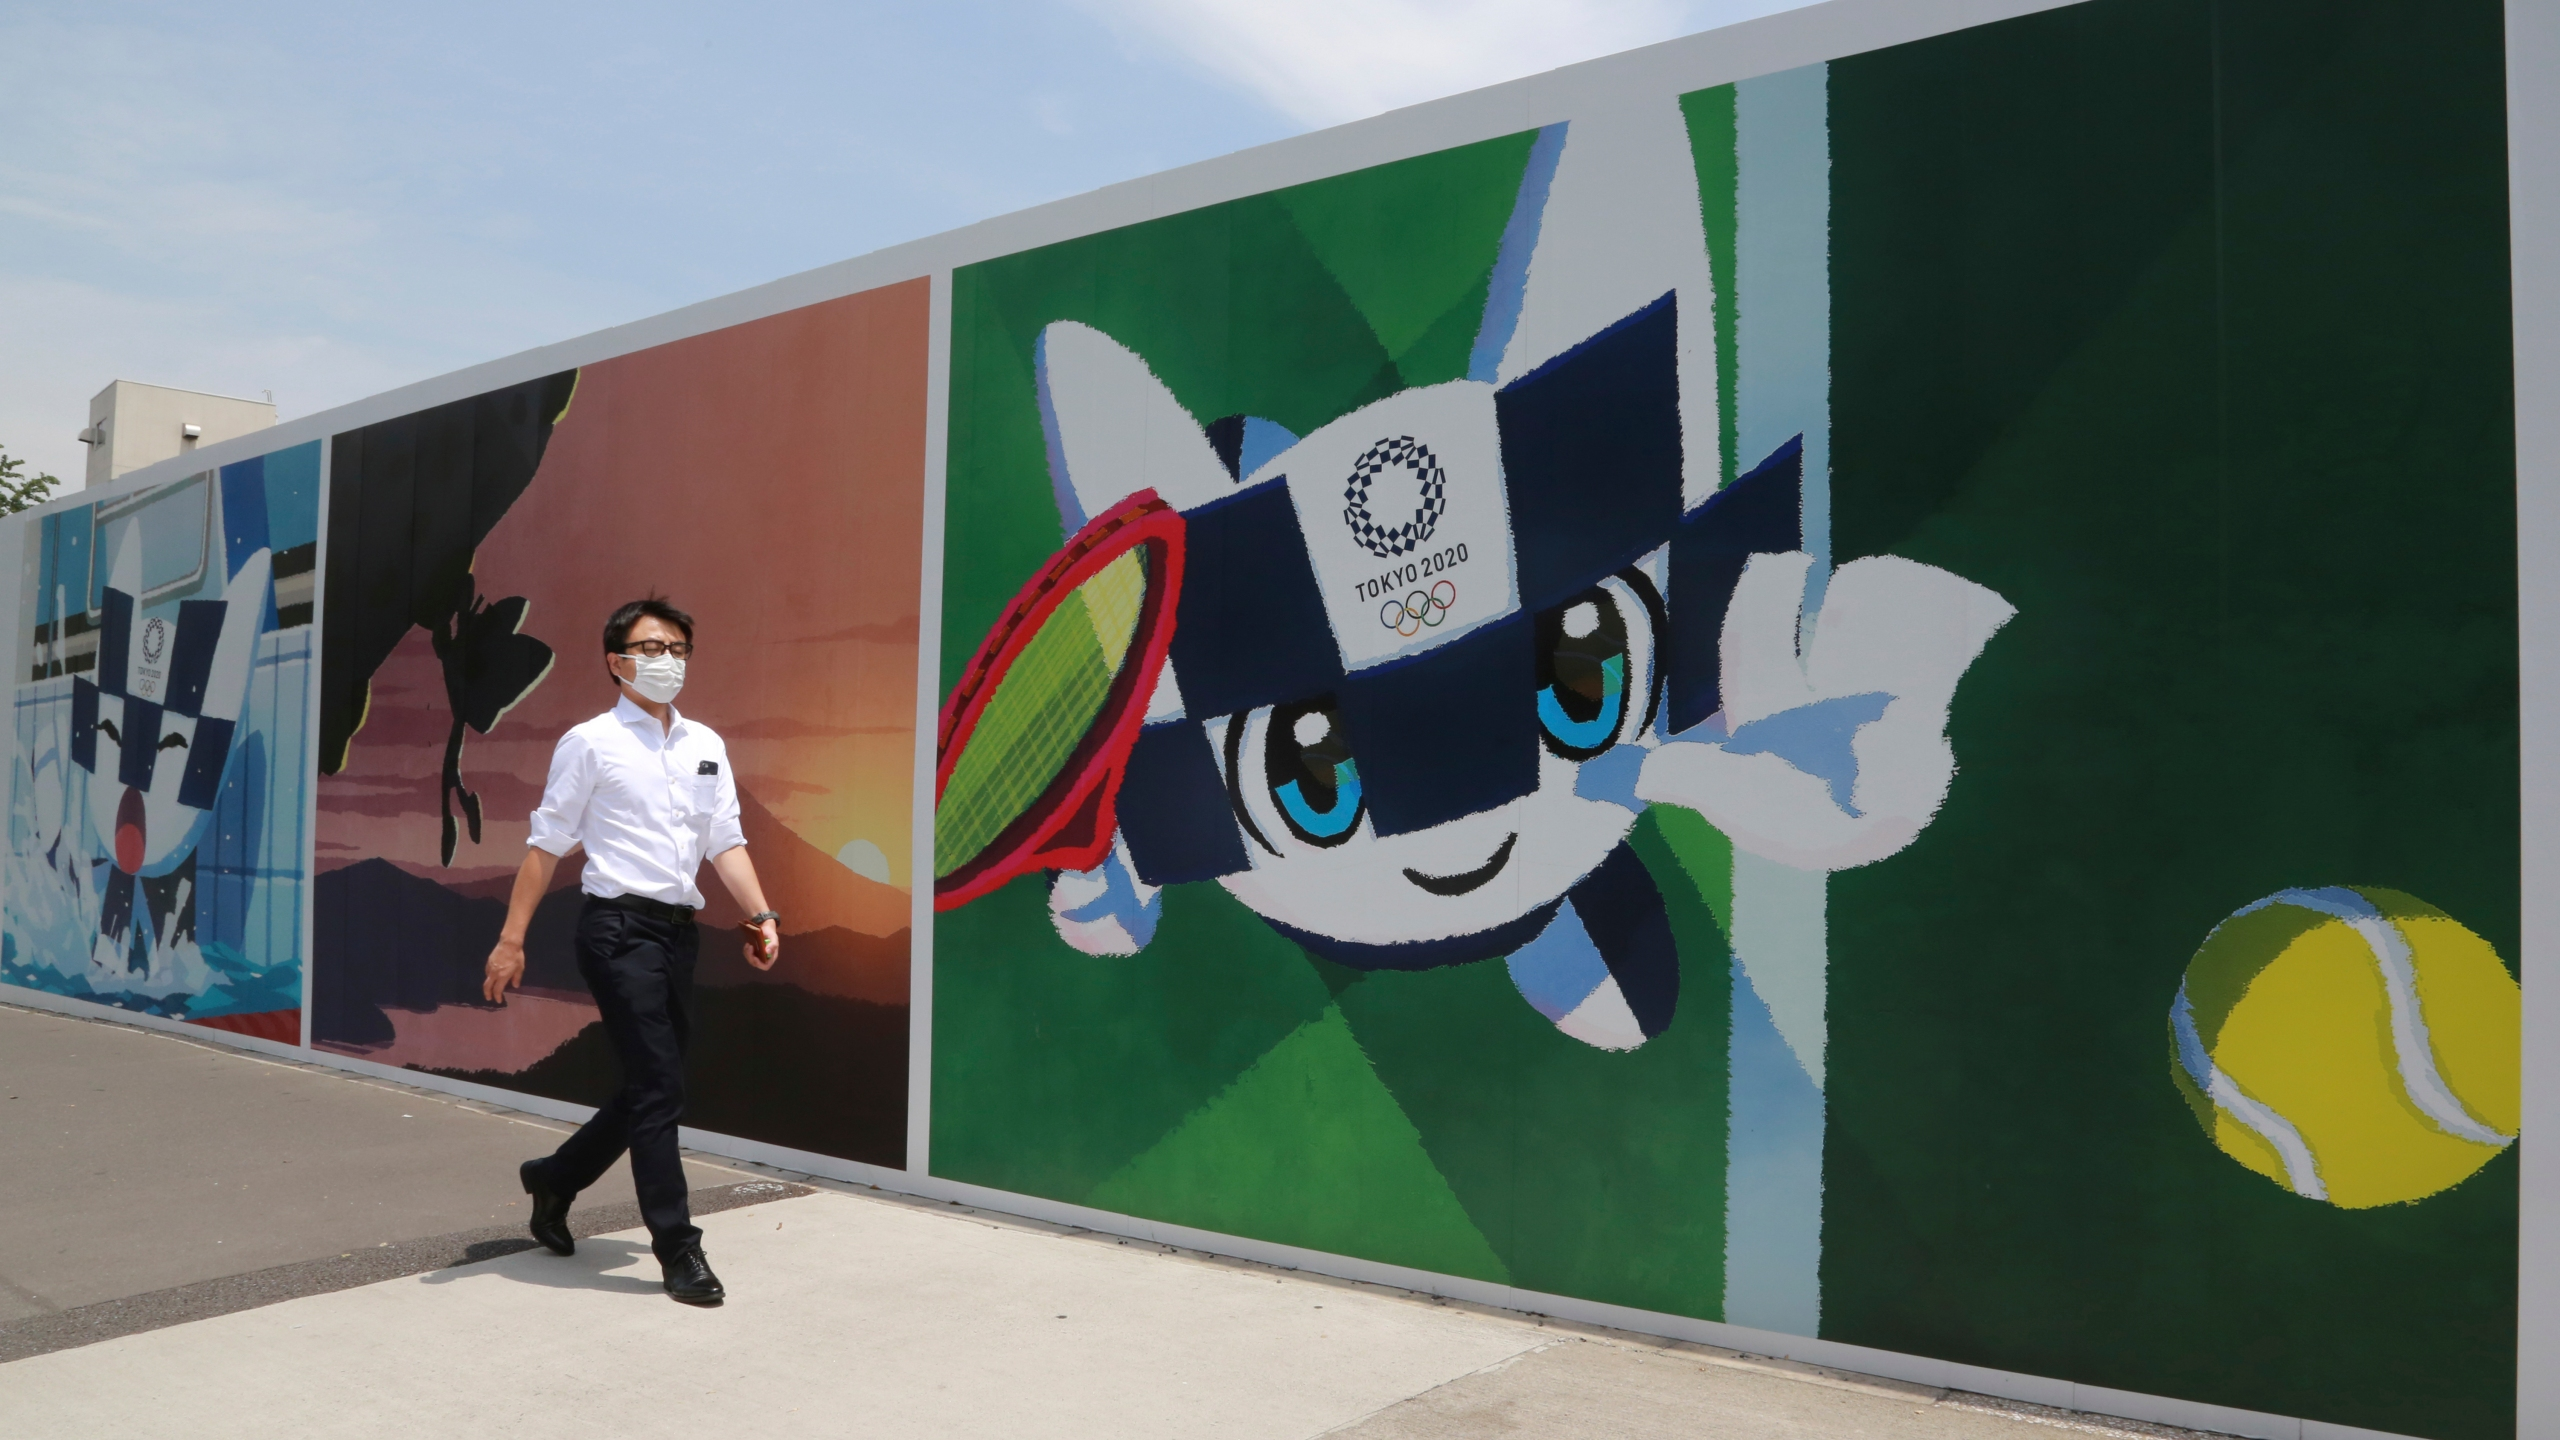 A man walks by posters promoting the Olympic Games planned to start in the summer of 2021, in Tokyo, Monday, May 24, 2021. (AP Photo/Koji Sasahara)